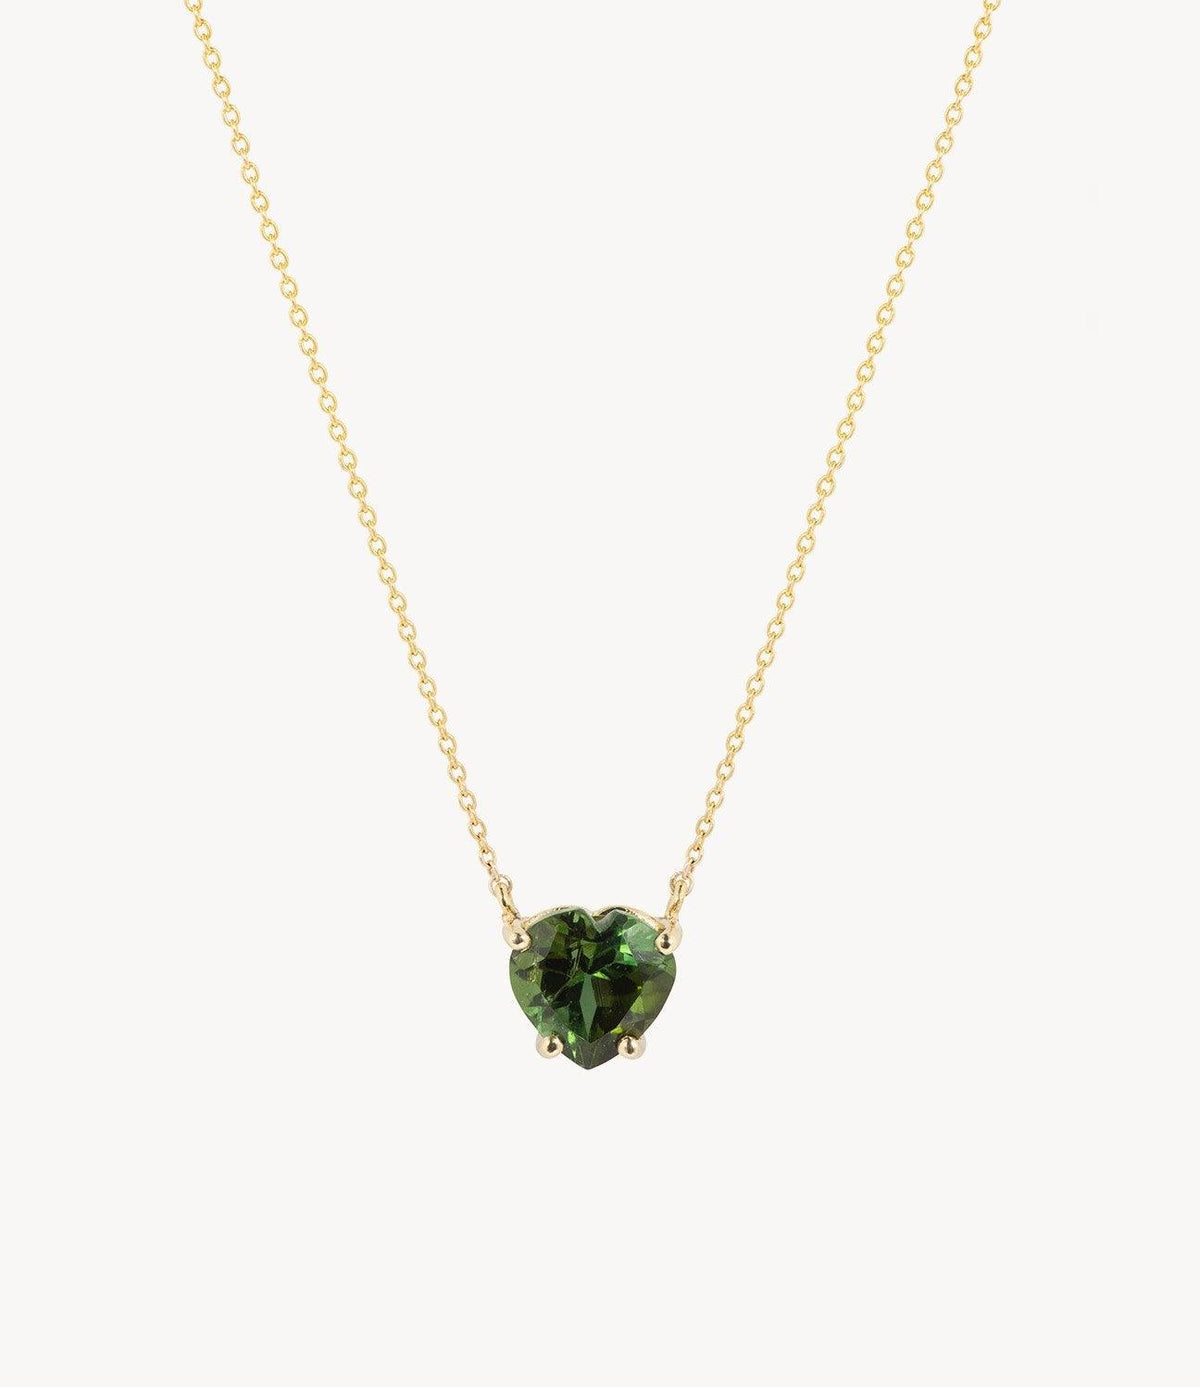 Green Tourmaline Heart Necklace